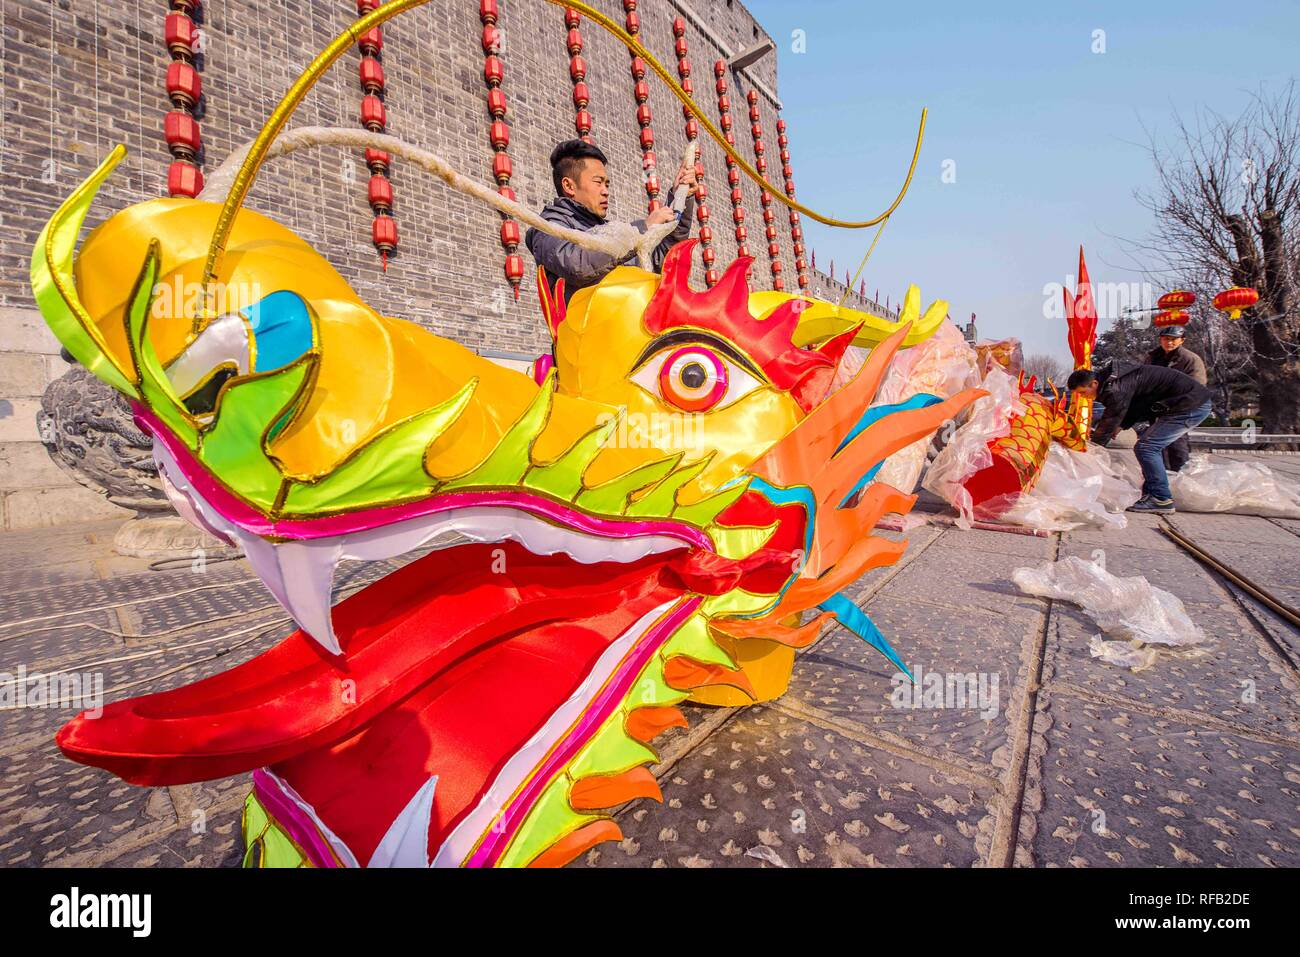 Weifang China S Shandong Province 24th Jan 2019 Workers Arrange A Dragon Shaped Lantern In The Qingzhou